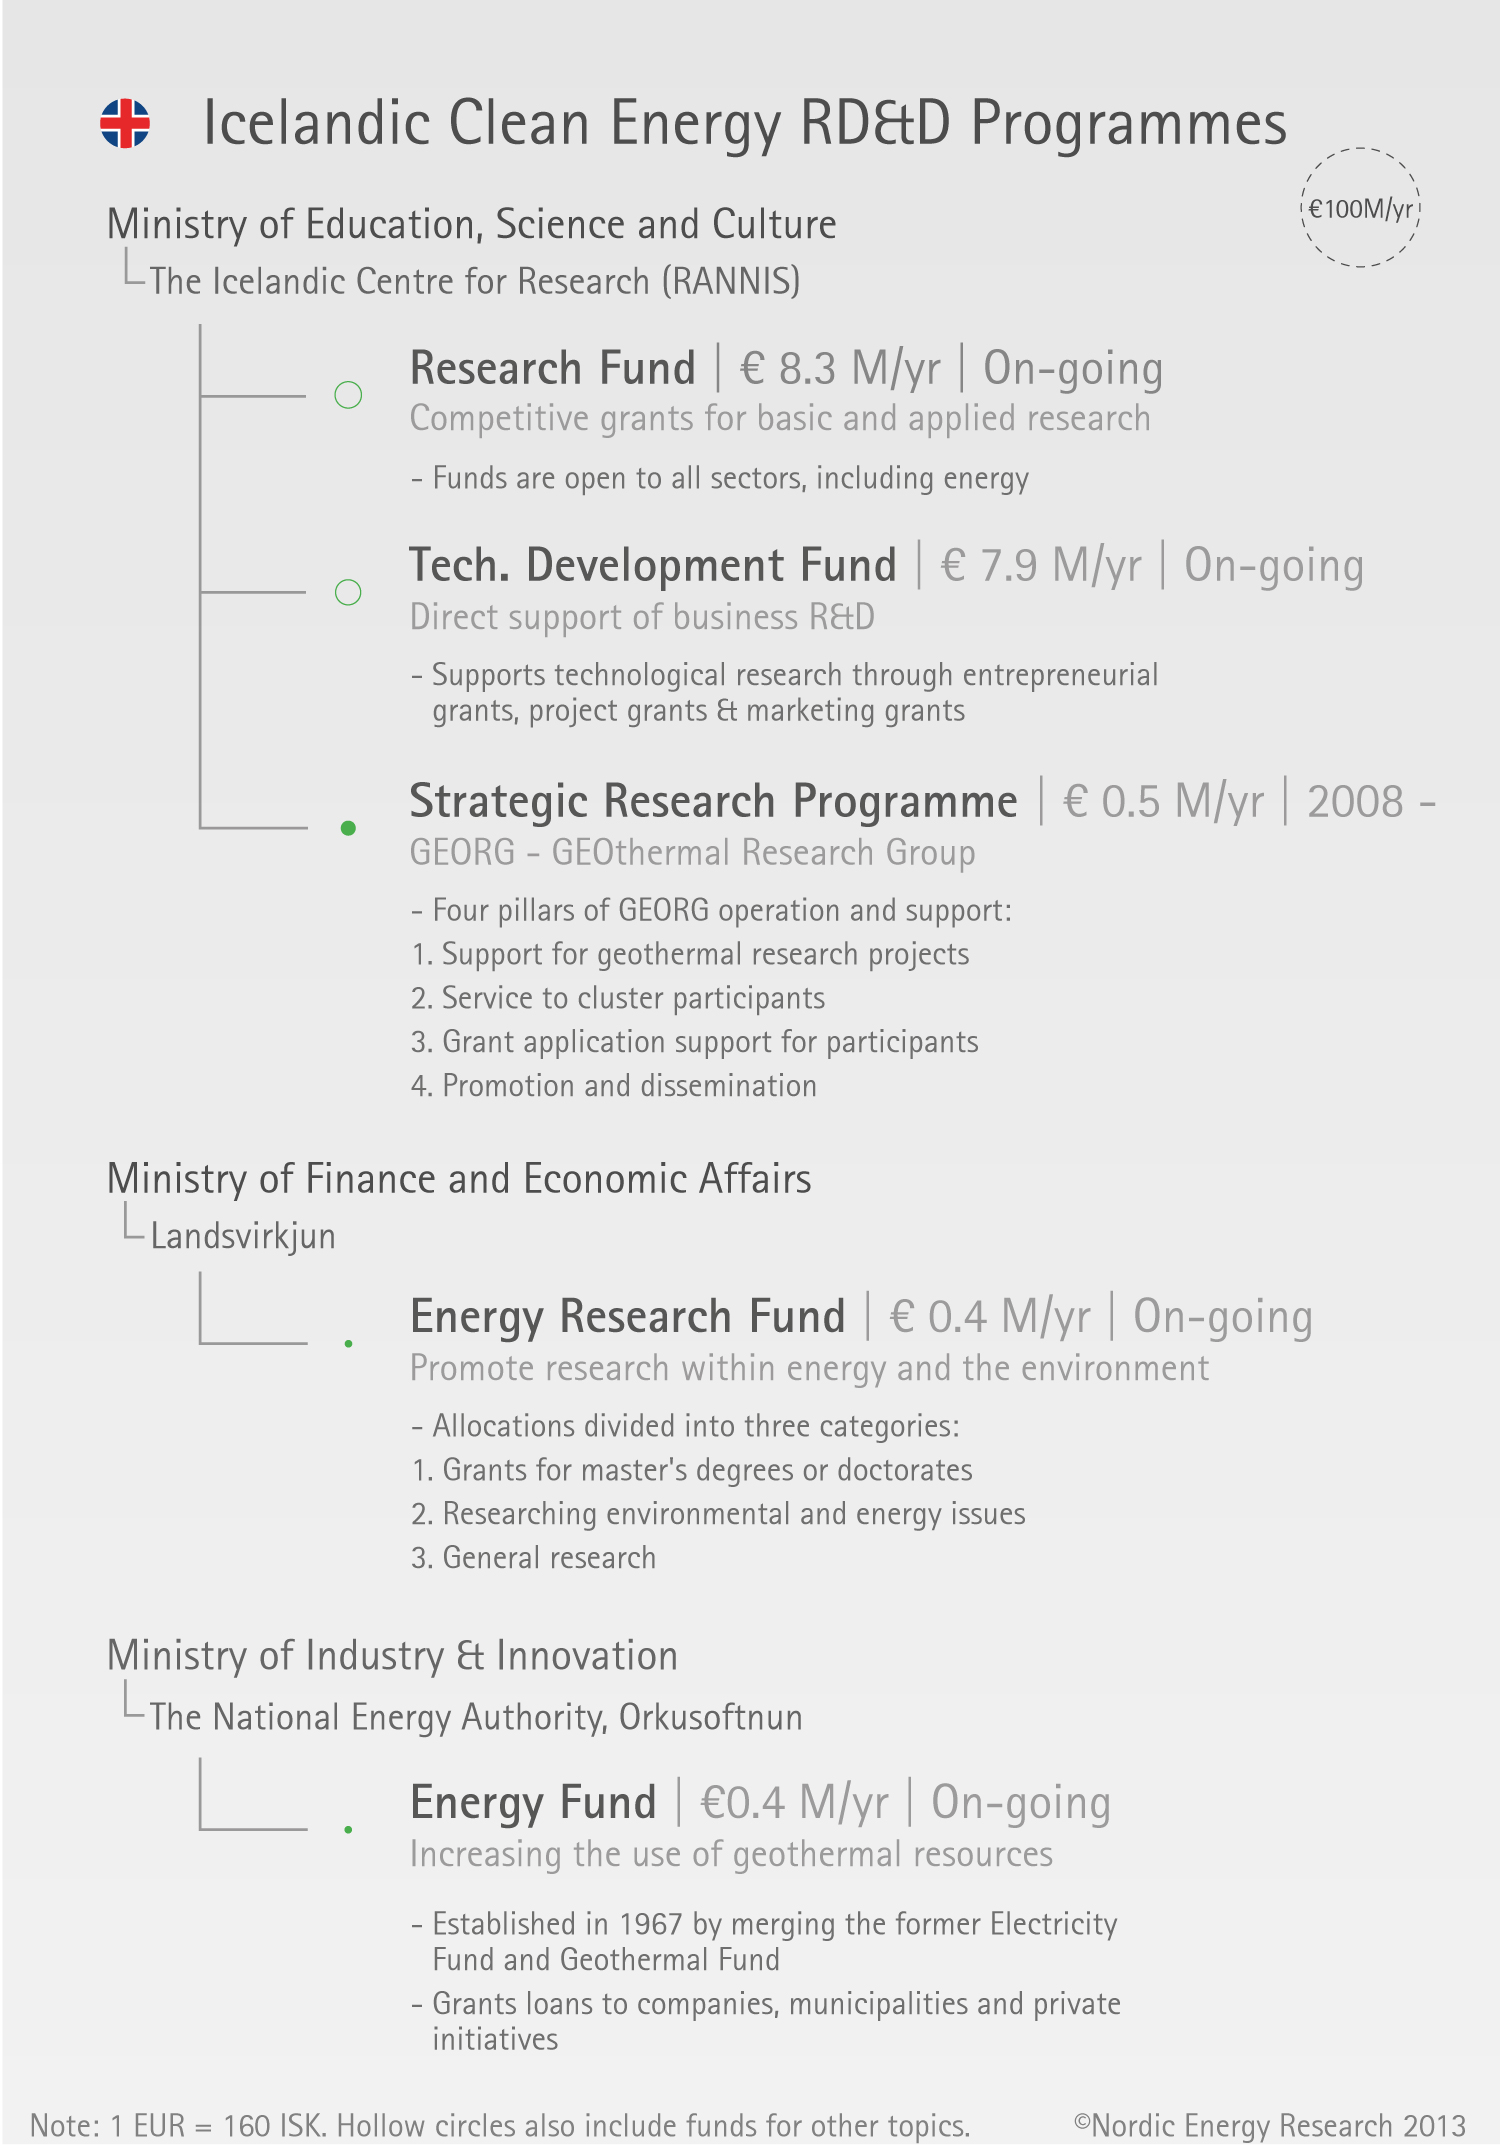 Clean Energy Research Programmes in Iceland – Nordic Energy Research